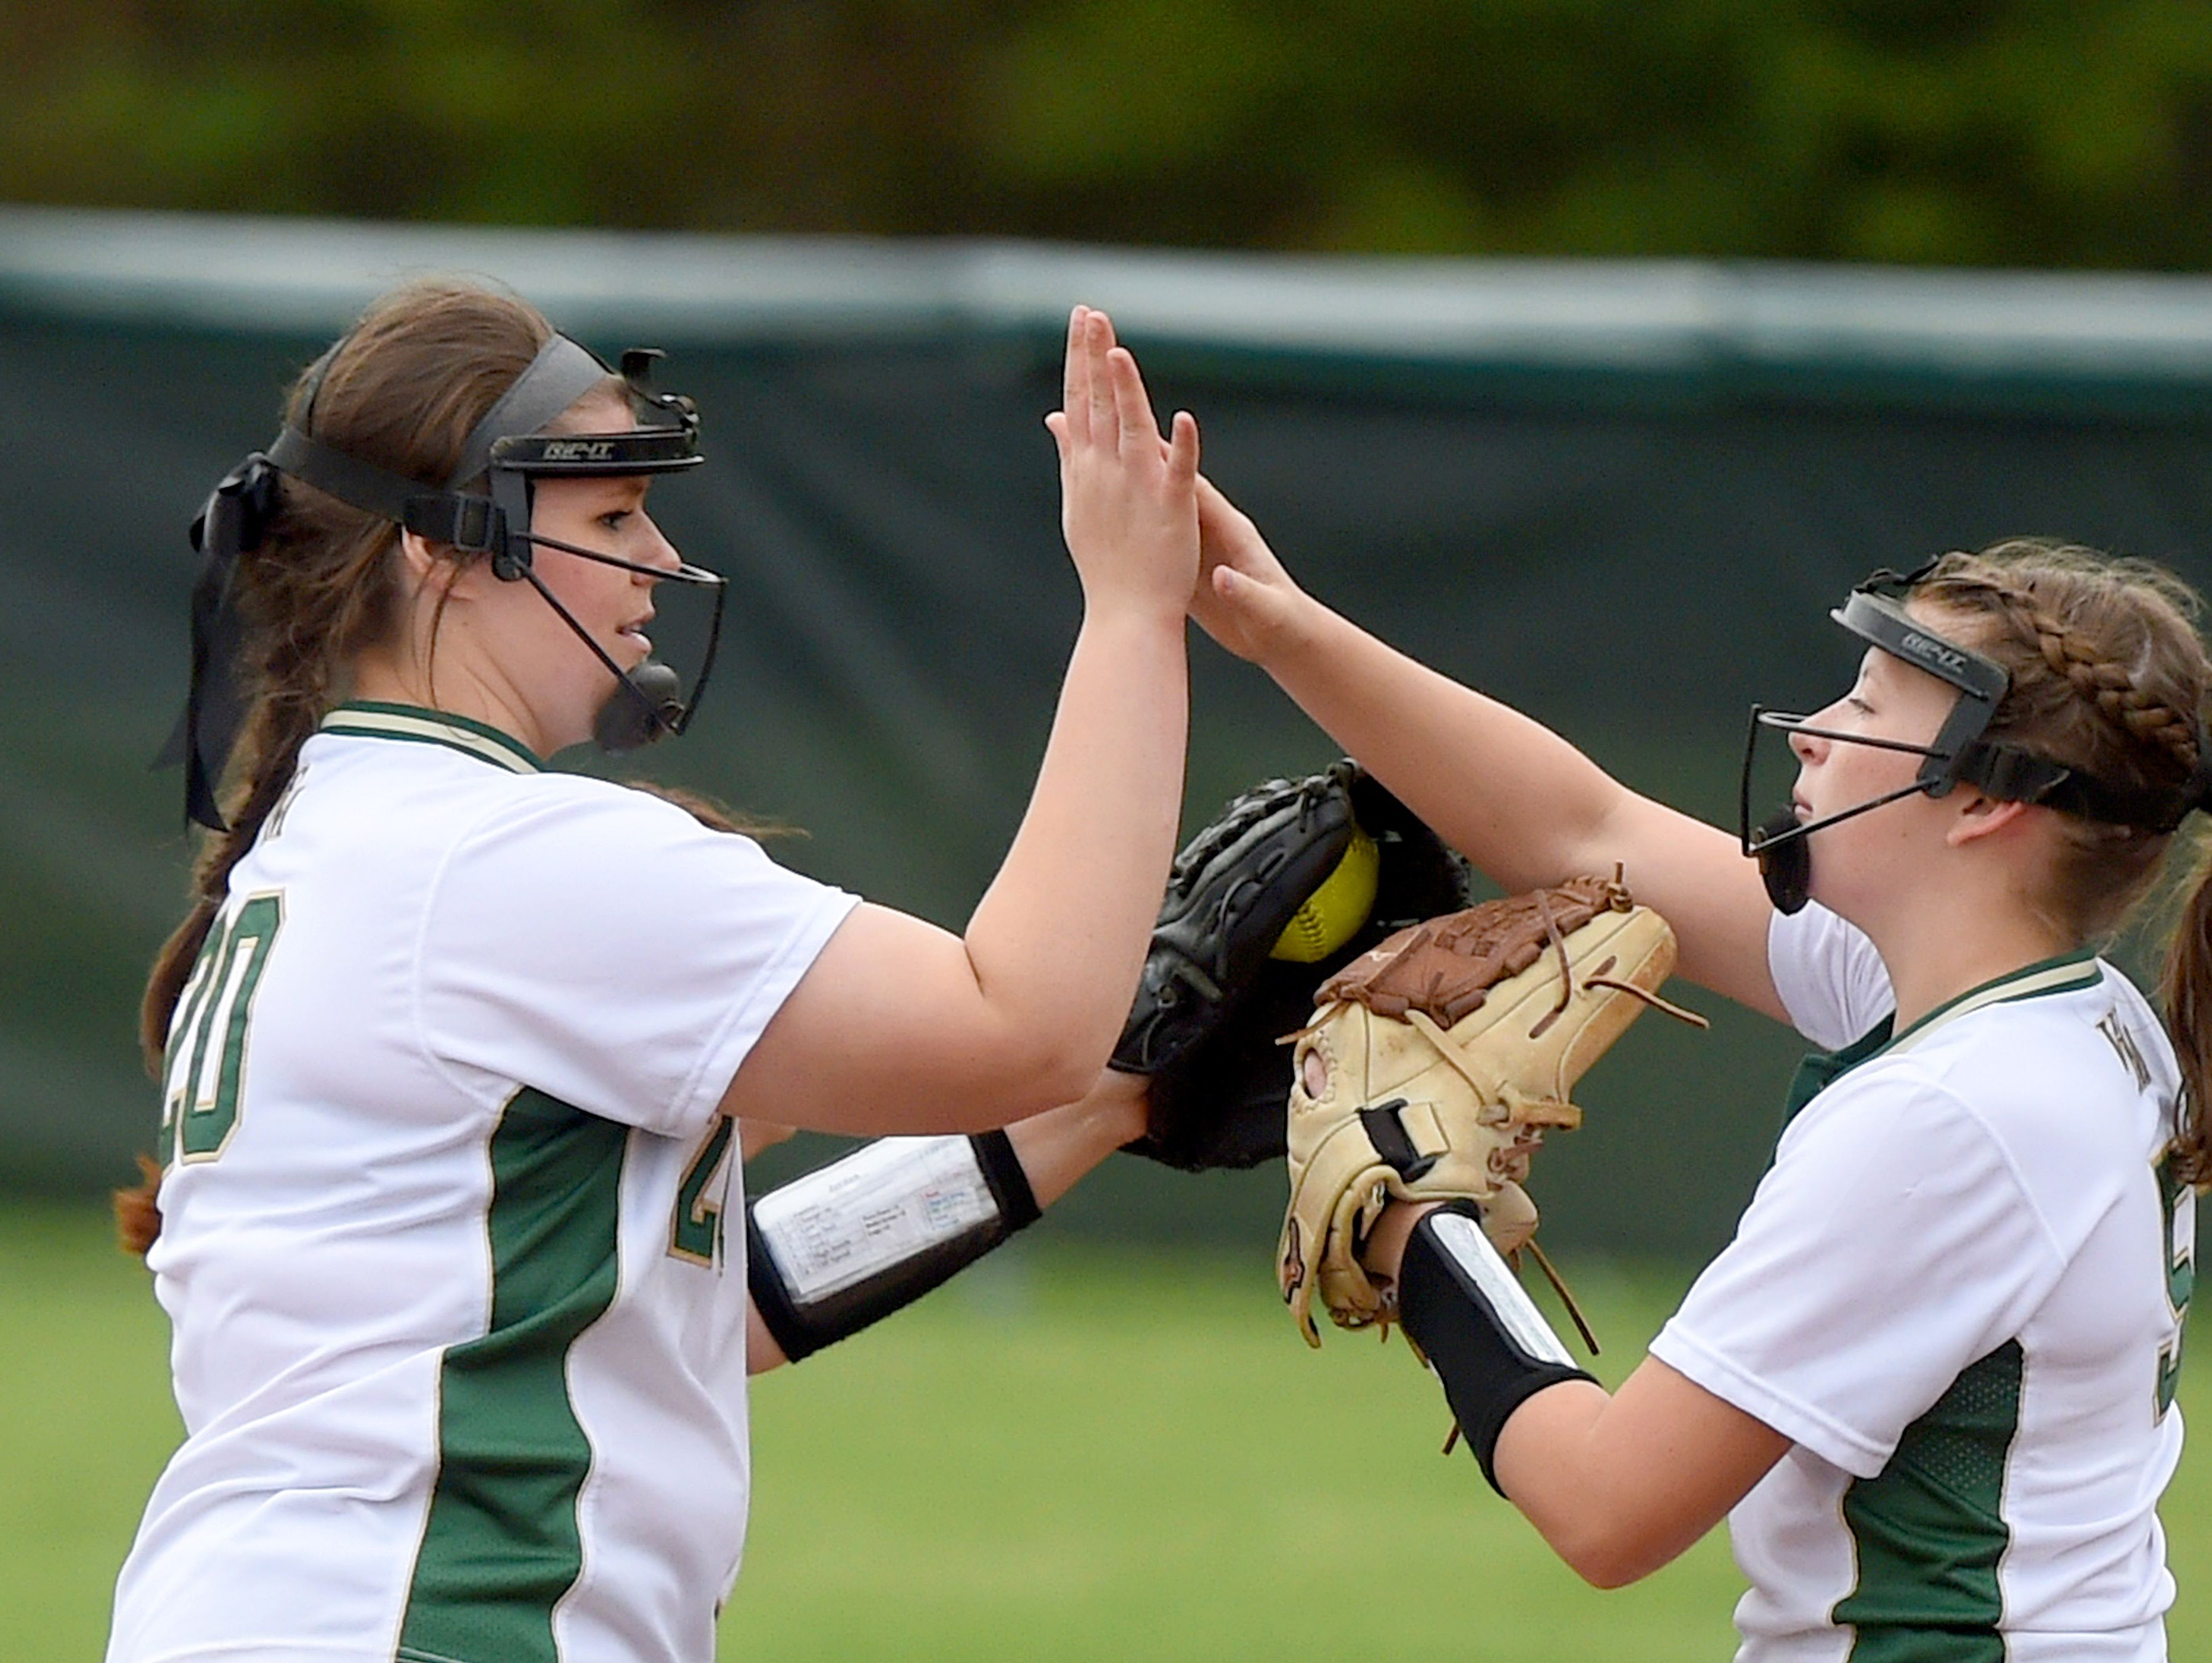 Wilson Memorial pitcher Jordan Sondrol claps hands with teammate Emma Peery before taking the pitchers mound at the start of the first inning during a softball game played in Fishersville on Friday, April 1, 2016.